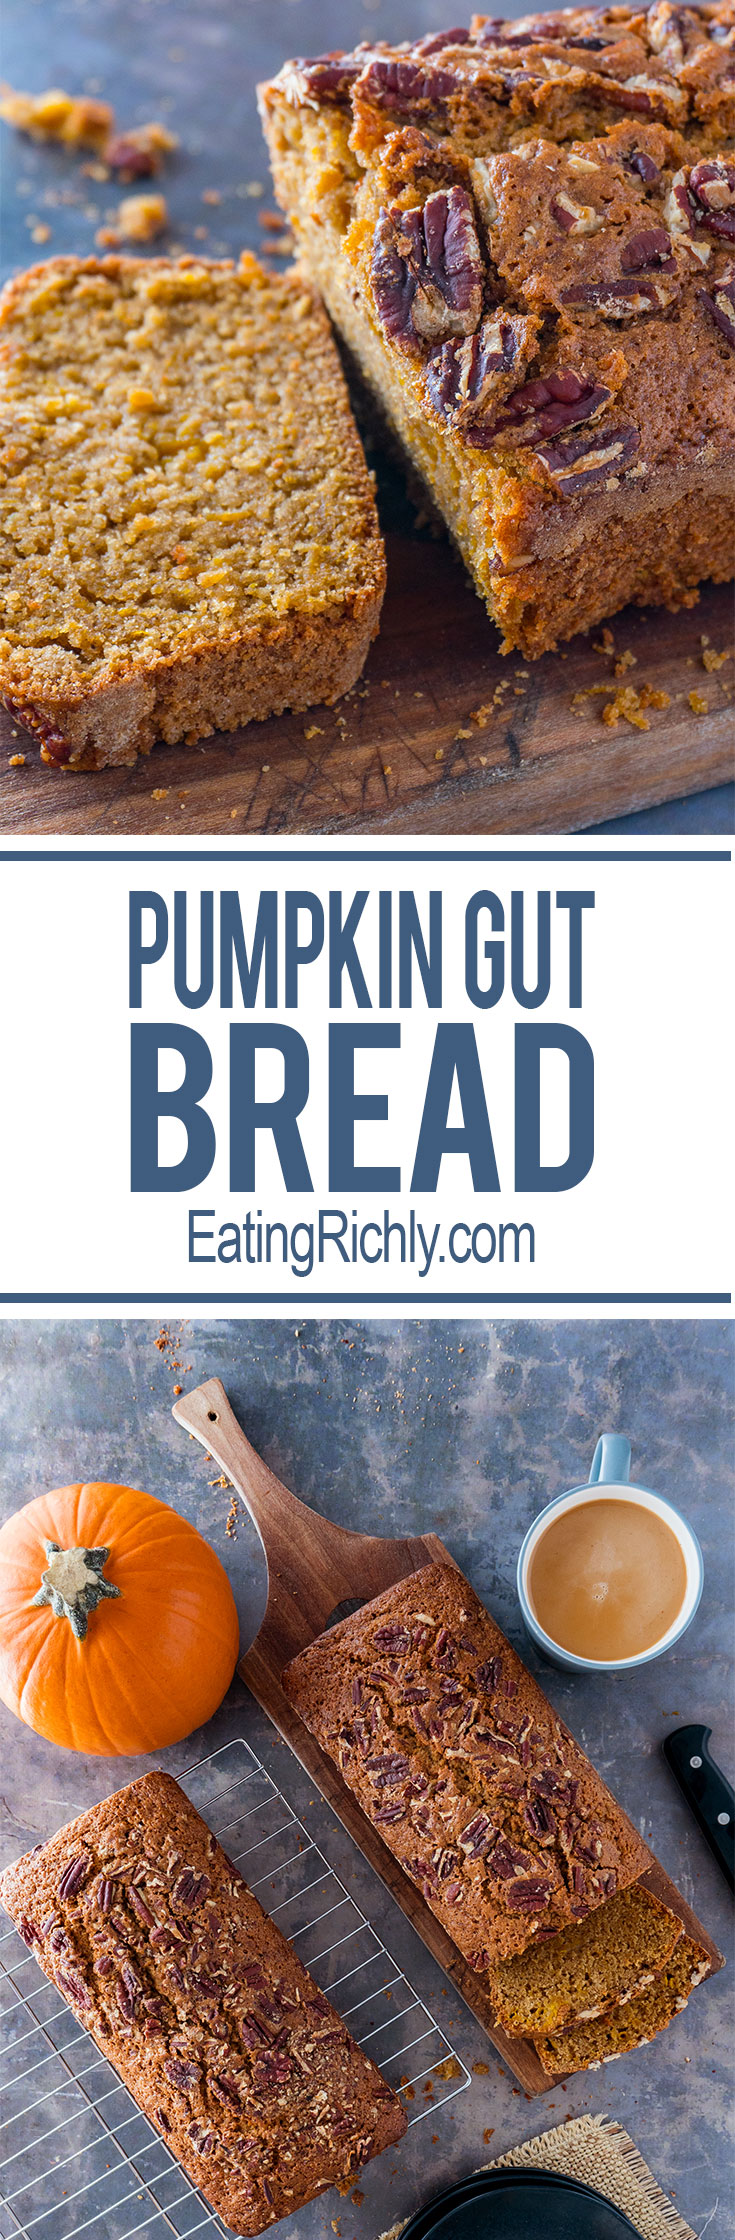 Turn the stringy guts of your Halloween pumpkin, into hearty, sweet, whole wheat pumpkin gut bread. You'll never throw pumpkin guts away again! From EatingRichly.com